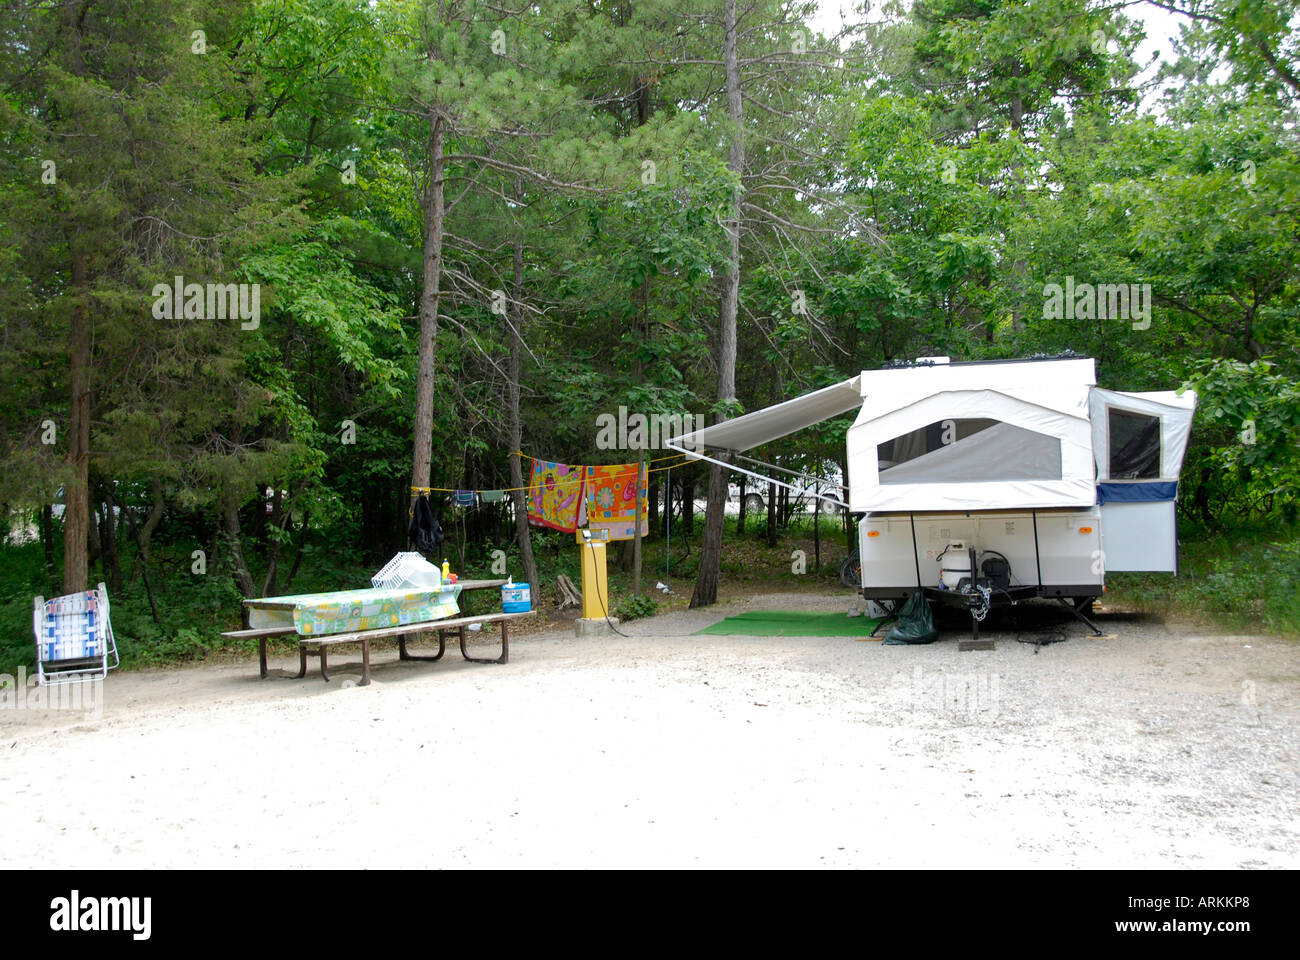 Camping at the Rifle River Recreational Area near Mio